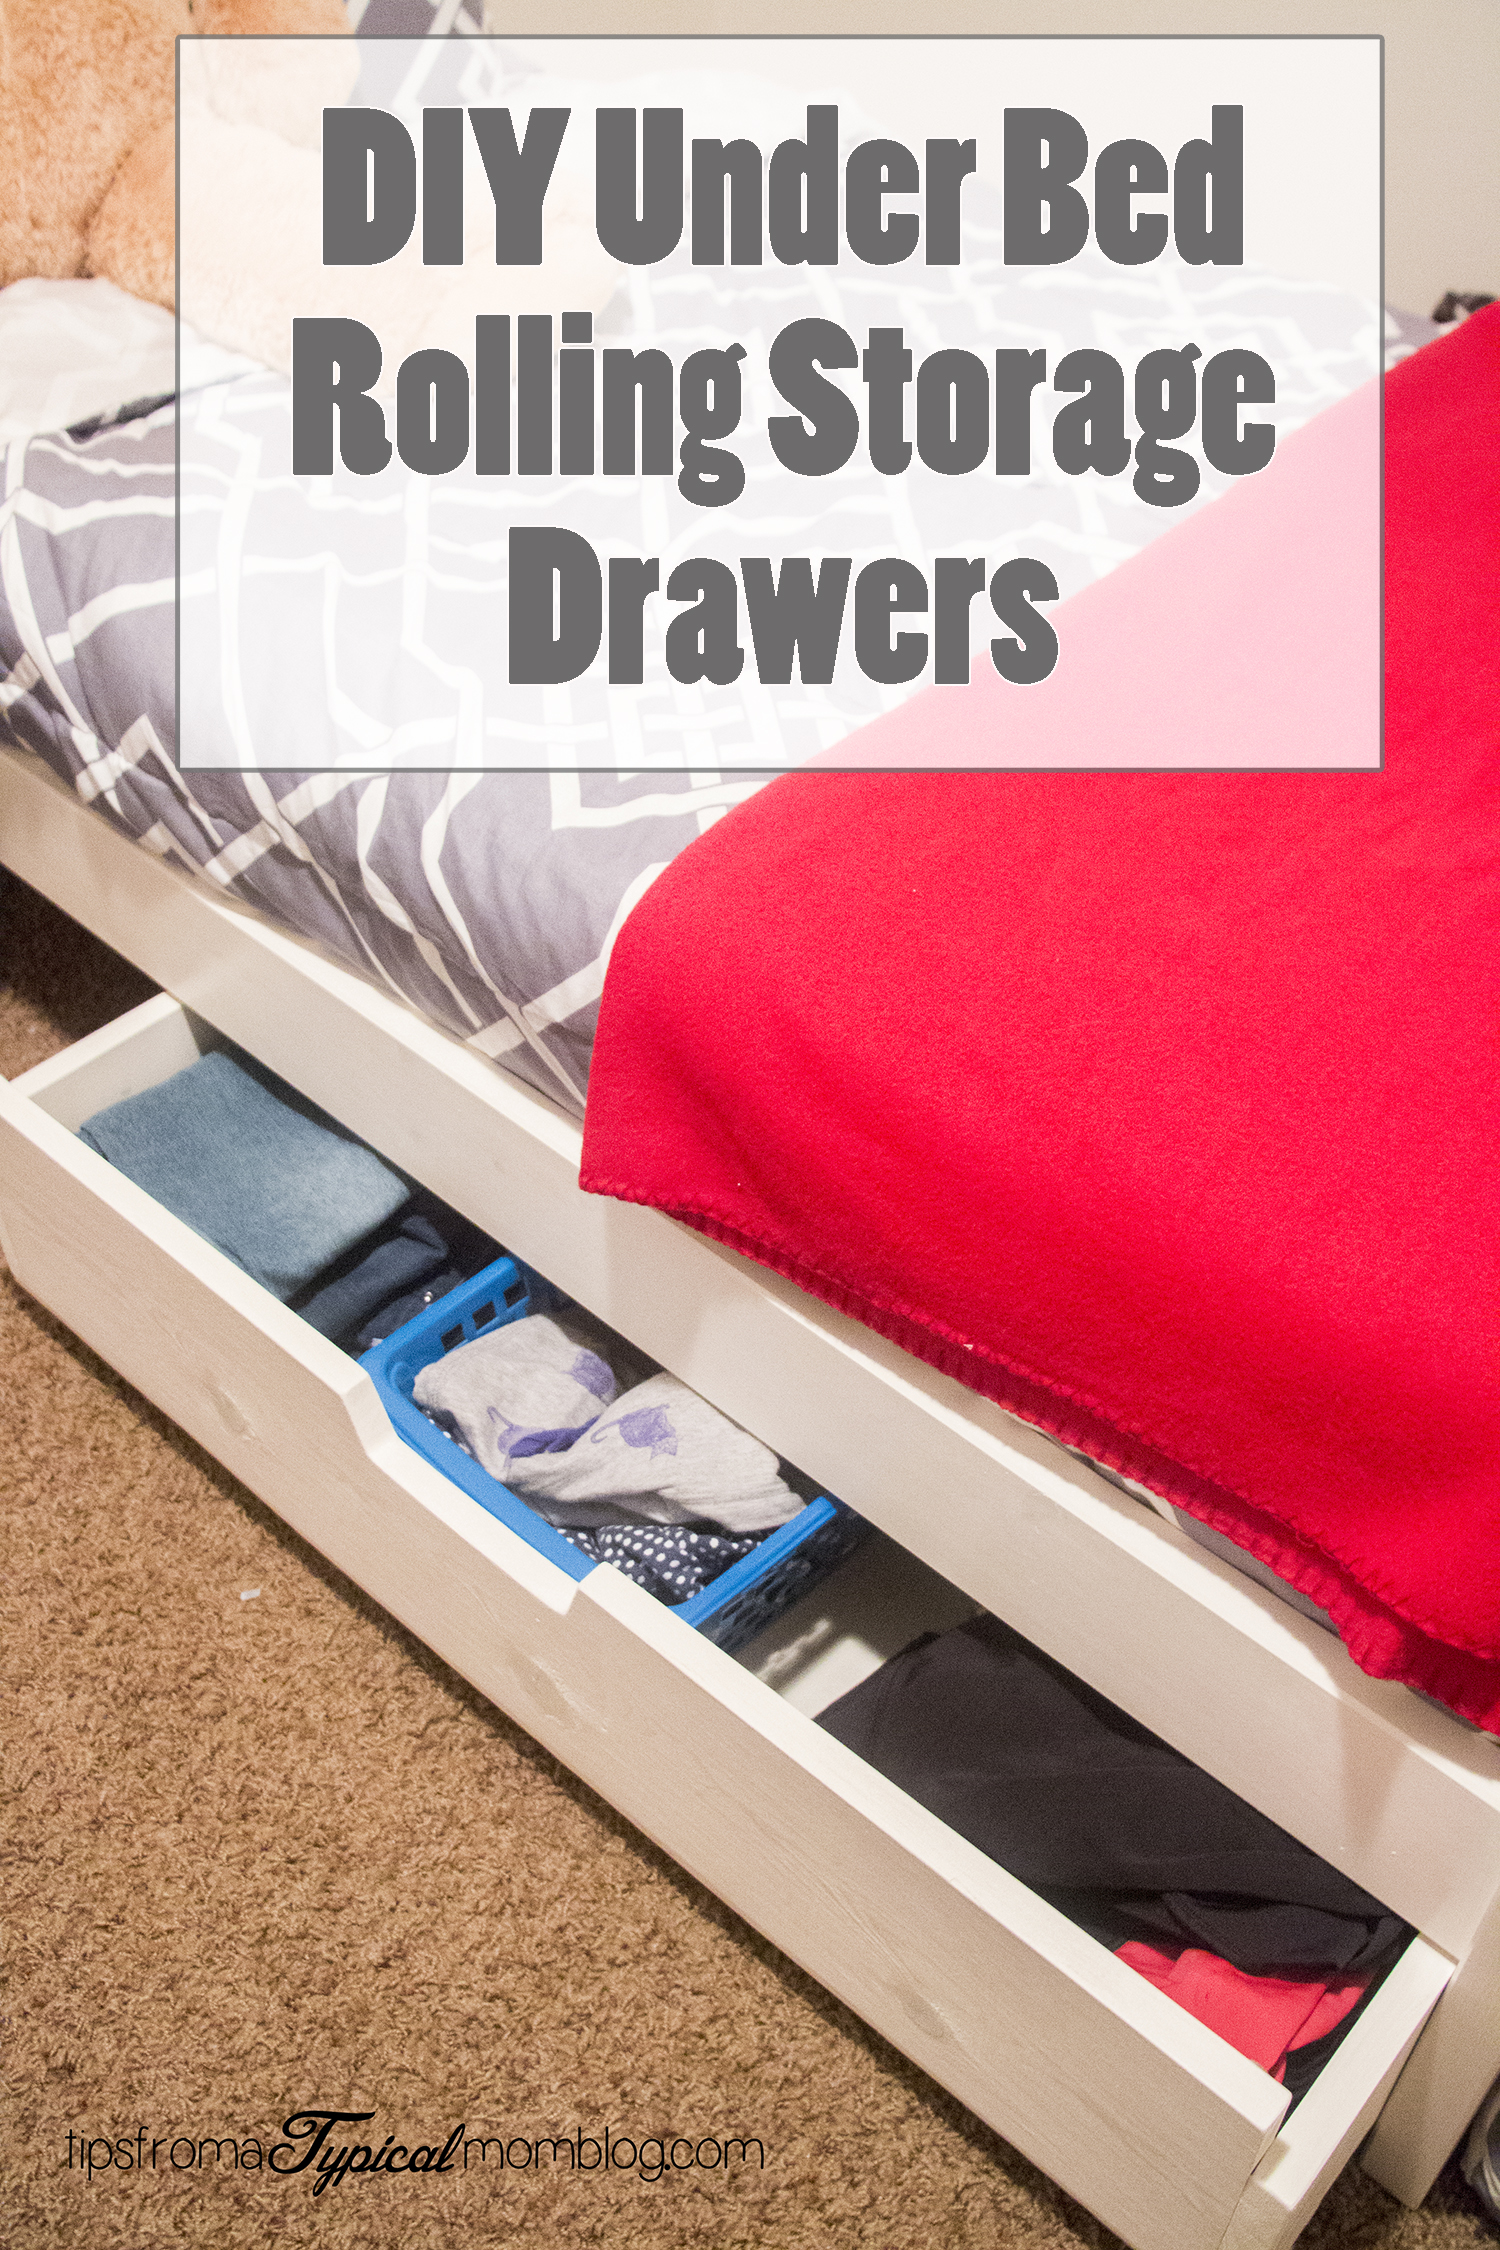 Drawers For Under Bed Diy Under Bed Rolling Storage Drawers Tutorial Tips From A